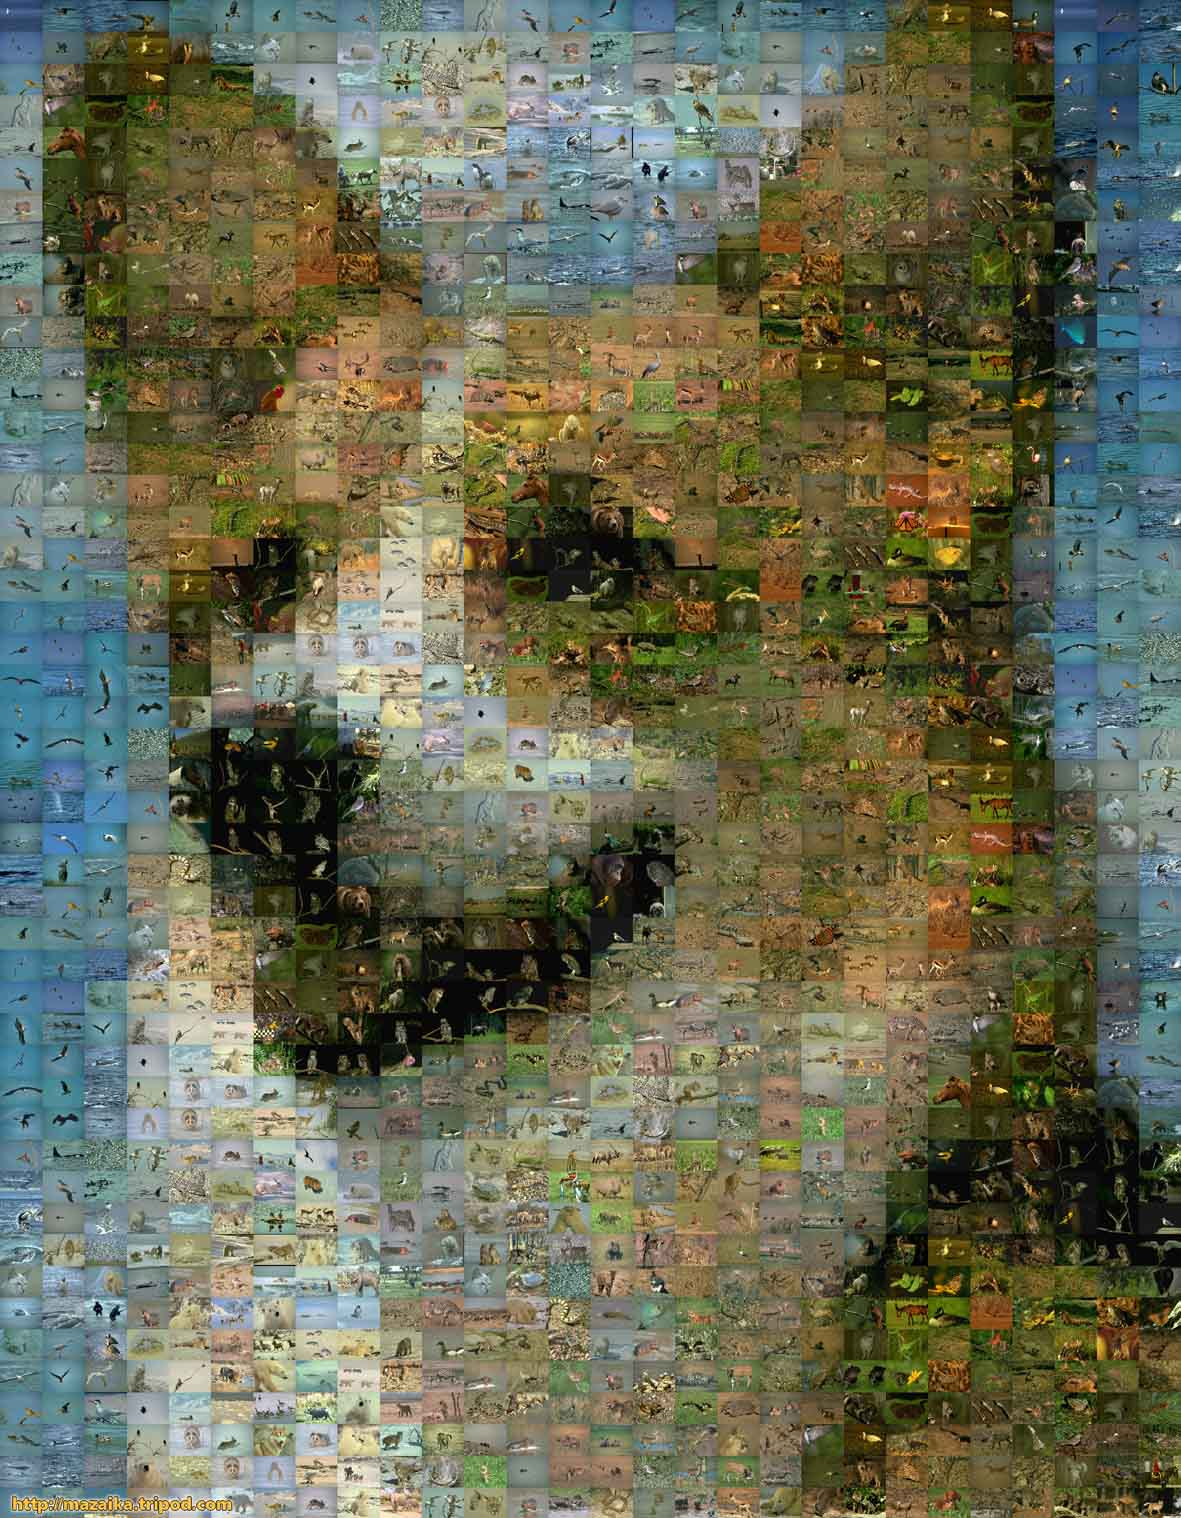 Photos Picture Mazaika The Photo Mosaic Program Make A Photo Mosaic From Your